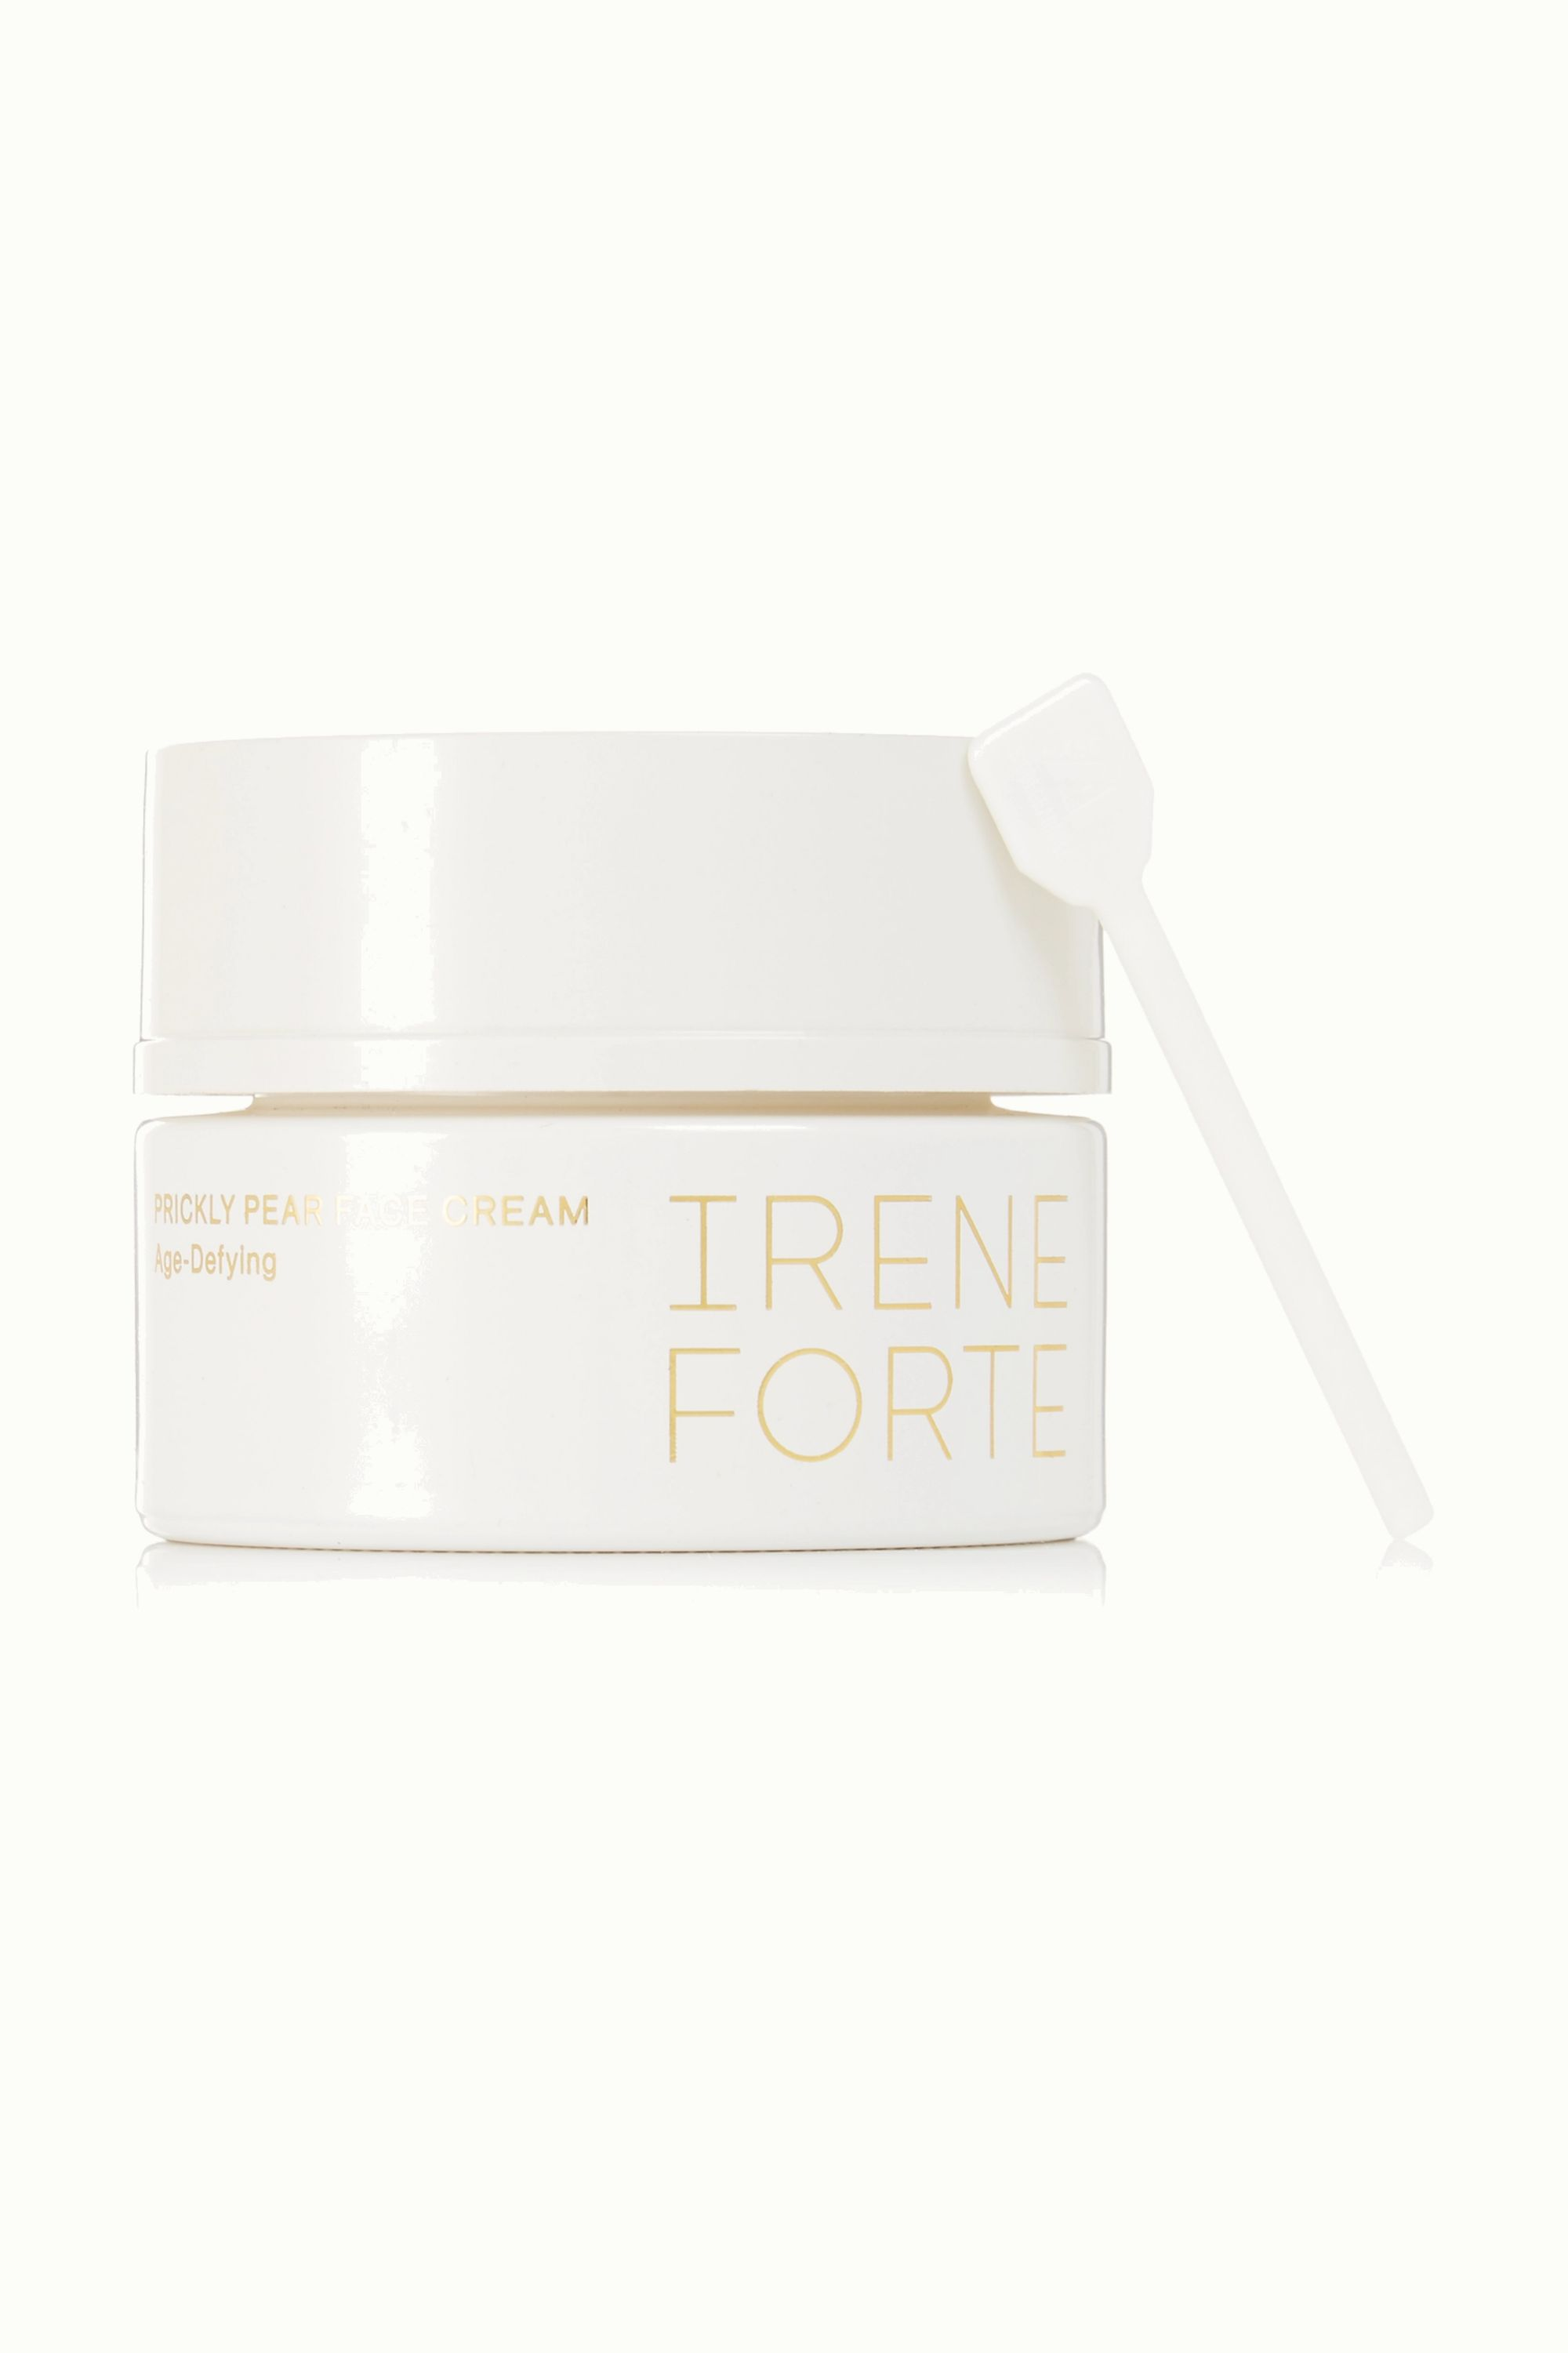 Irene Forte Age-Defying Prickly Pear Face Cream, 50 ml – Gesichtscreme